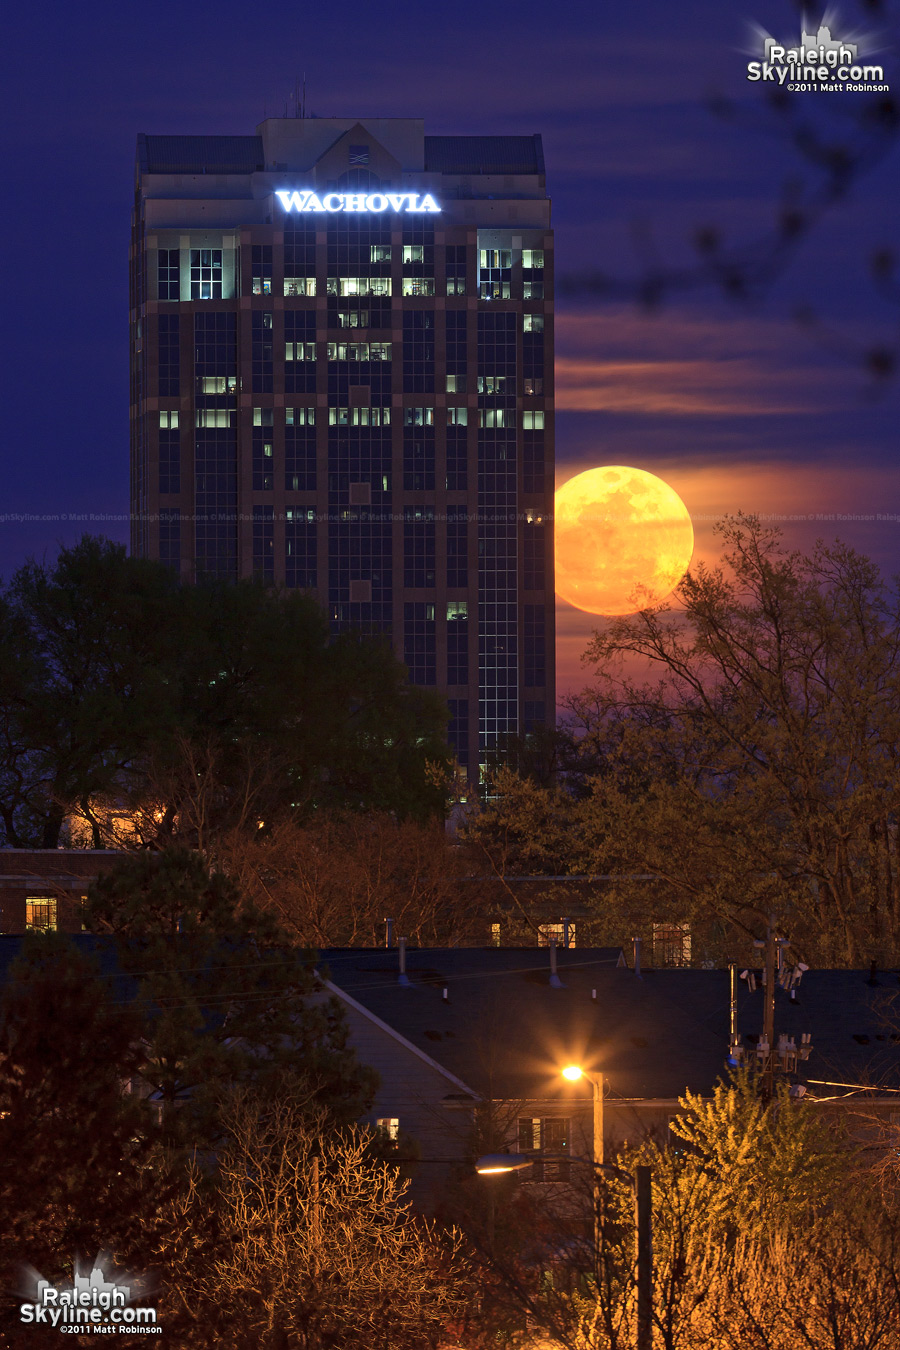 The Supermoon rises behind Wachovia Capitol Center in Raleigh, NC on March 19, 2011